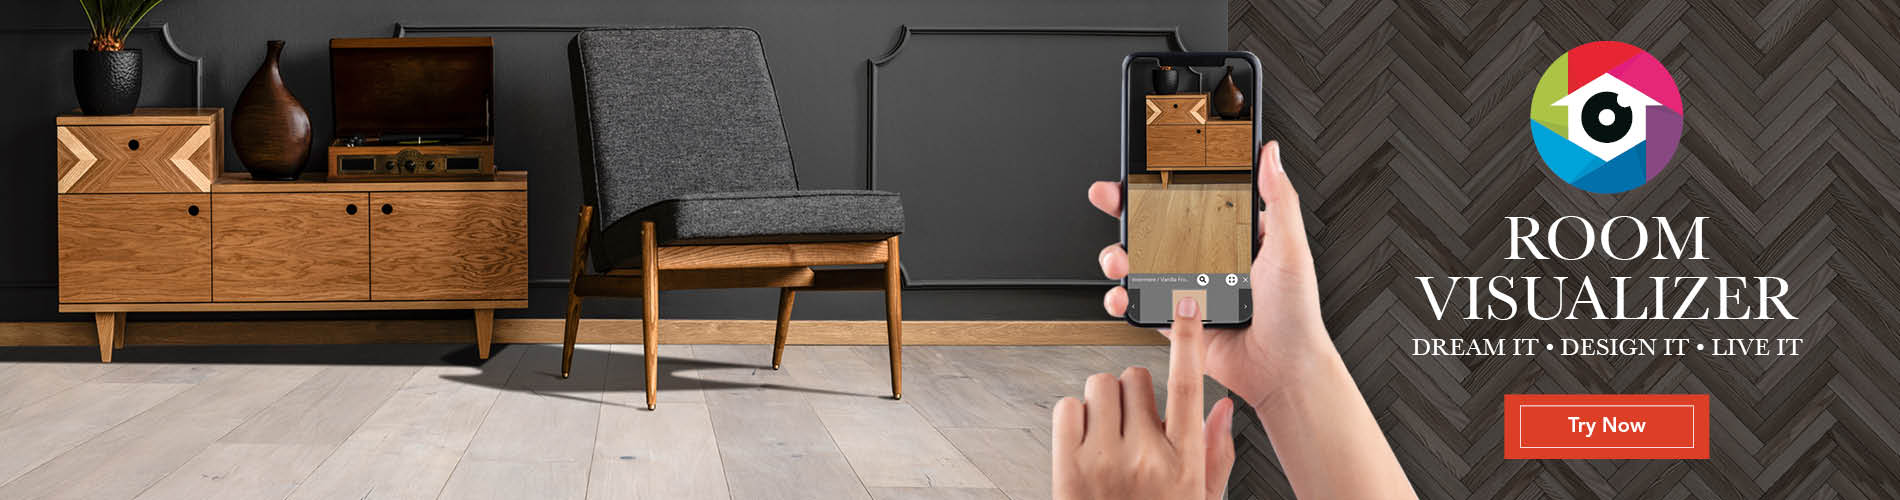 See our flooring in YOUR room with our Room Visualizer tool.